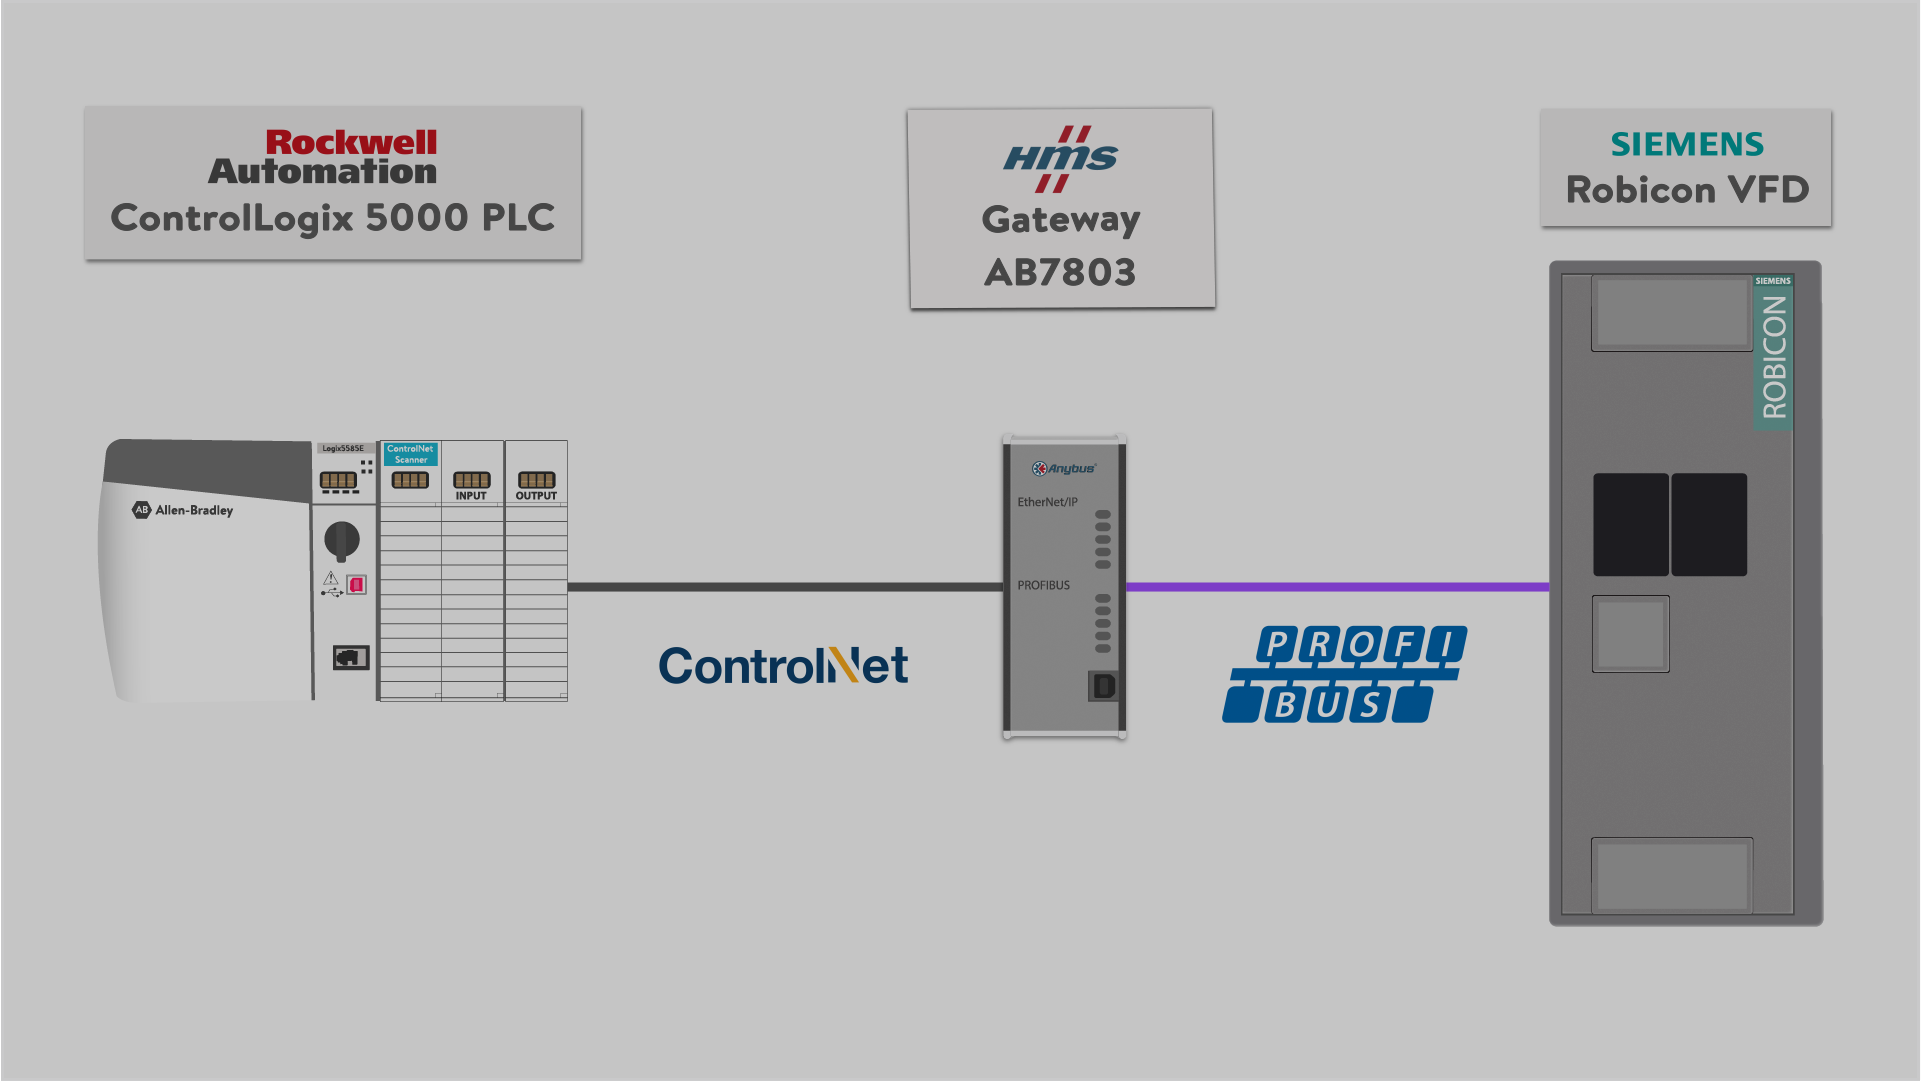 How to Control a VFD with a PLC - Part 4 (Configuring Motor ... Vector Type Vfd Schematic Diagram on 3 line diagram, xbox controller circuit diagram, 230 single phase wiring diagram, 230v 3 phase wiring diagram, symbol for motor wire diagram, ge 300 line control wiring diagram, start stop switch wiring diagram, add a phase wiring diagram, vfd clock schematics, bridgeport j head diagram, vfd s converting 1 phase to 3 phase diagrams, vfd motor wiring, hand off auto wiring diagram, vfd with bypass switch drawings, baldor 3 phase wiring diagram, variable speed switch wiring diagram, single phase transformer wiring diagram, slc 500 wiring diagram, control transformer wiring diagram, variable frequency drive diagram,